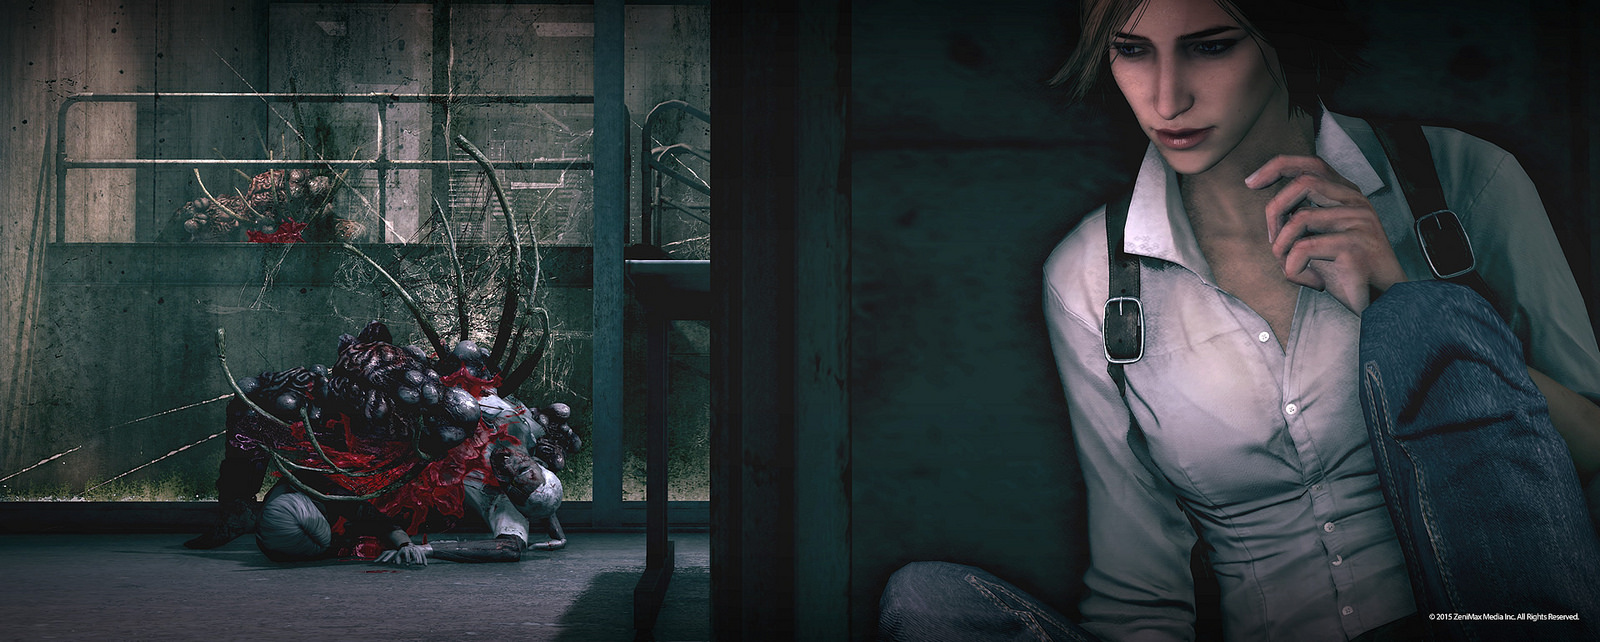 the_evil_within_the_assignment-2